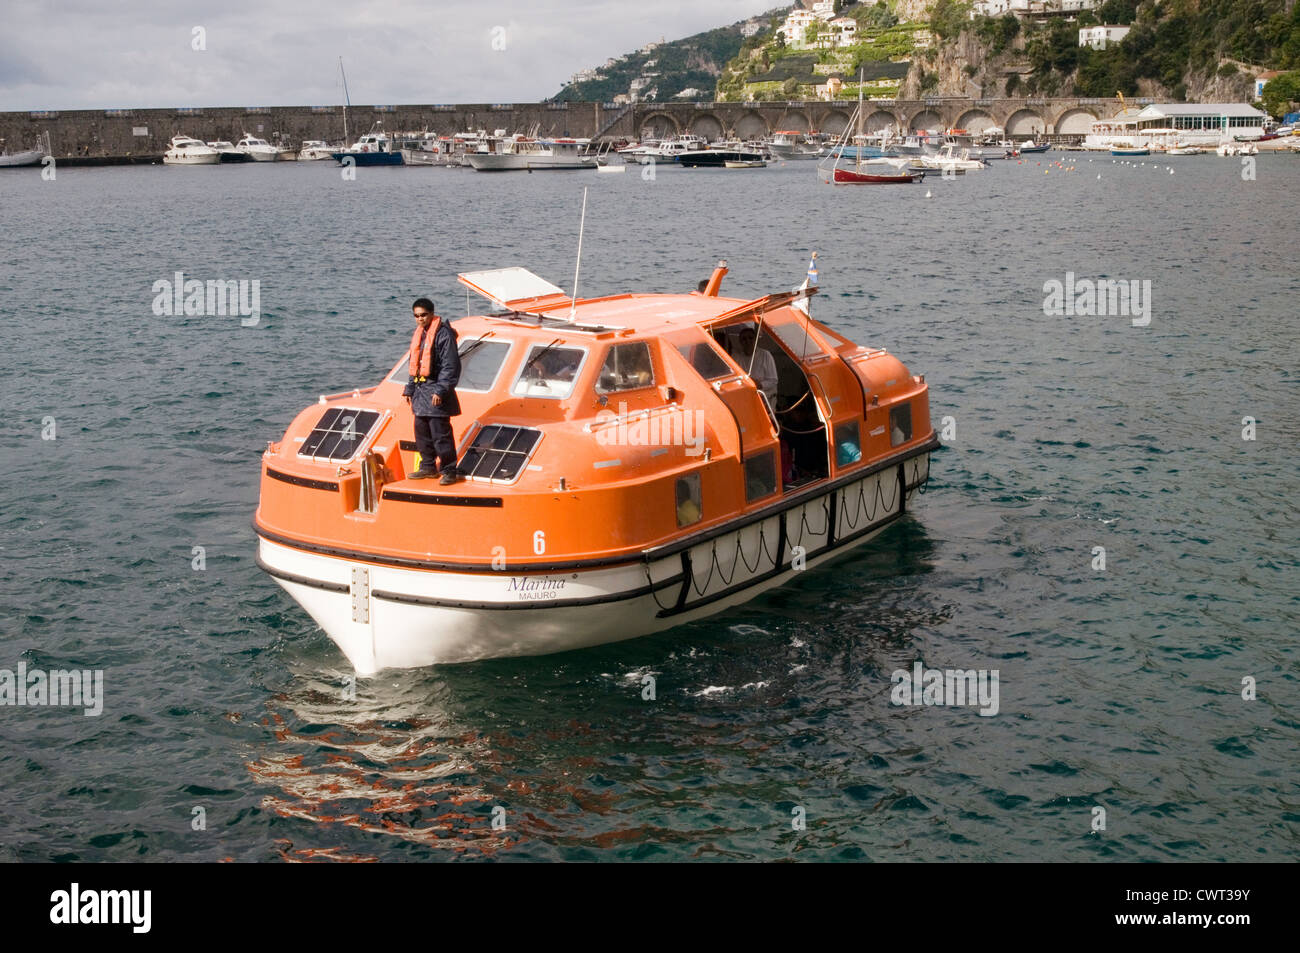 cruiseship cruise ships ship lifeboat lifeboats boats life being launched passengers being evacuated Stock Photo